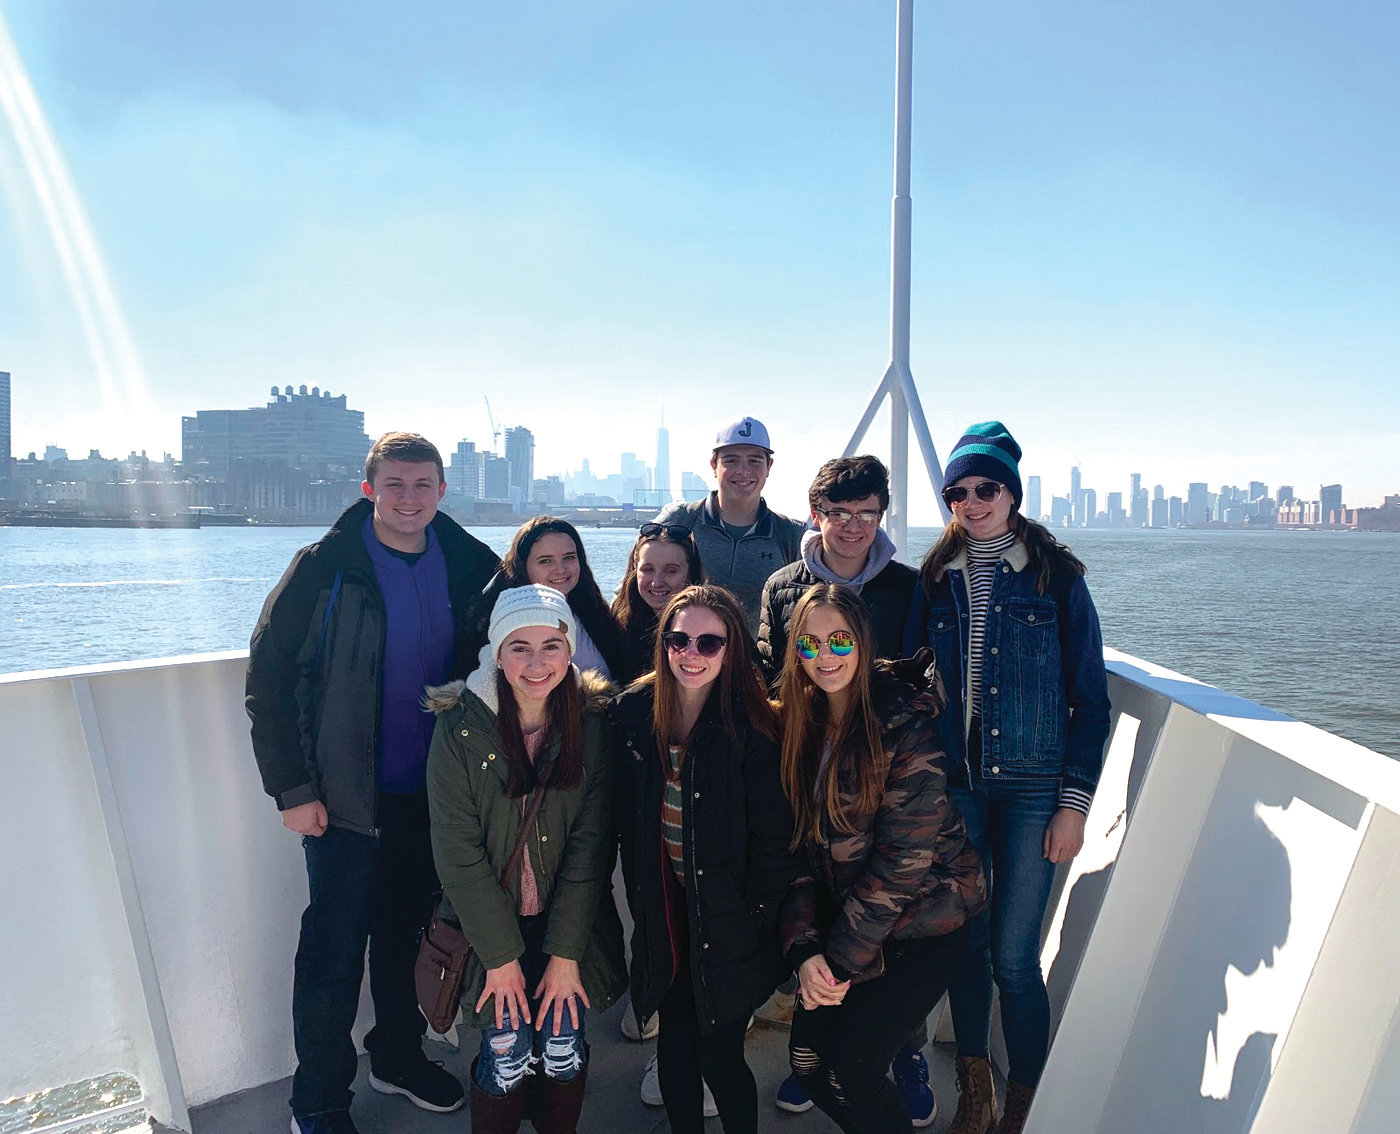 A TRIP TO REMEMBER: (Back row, left to right) Nick Cronan, Giuliana Melise, Gabby Athaide, Justin Salvatore, Nick Petrillo and Brynn Roche posed for a photo with (bottom row, left to right) Grace Centracchio, Brooke Marcotte and Kendall Bernier. Above, Trista Clark, Sarah Monahan, Caleb Lee and Julianna Ferruccio pose for a photo with the Statue of Liberty.